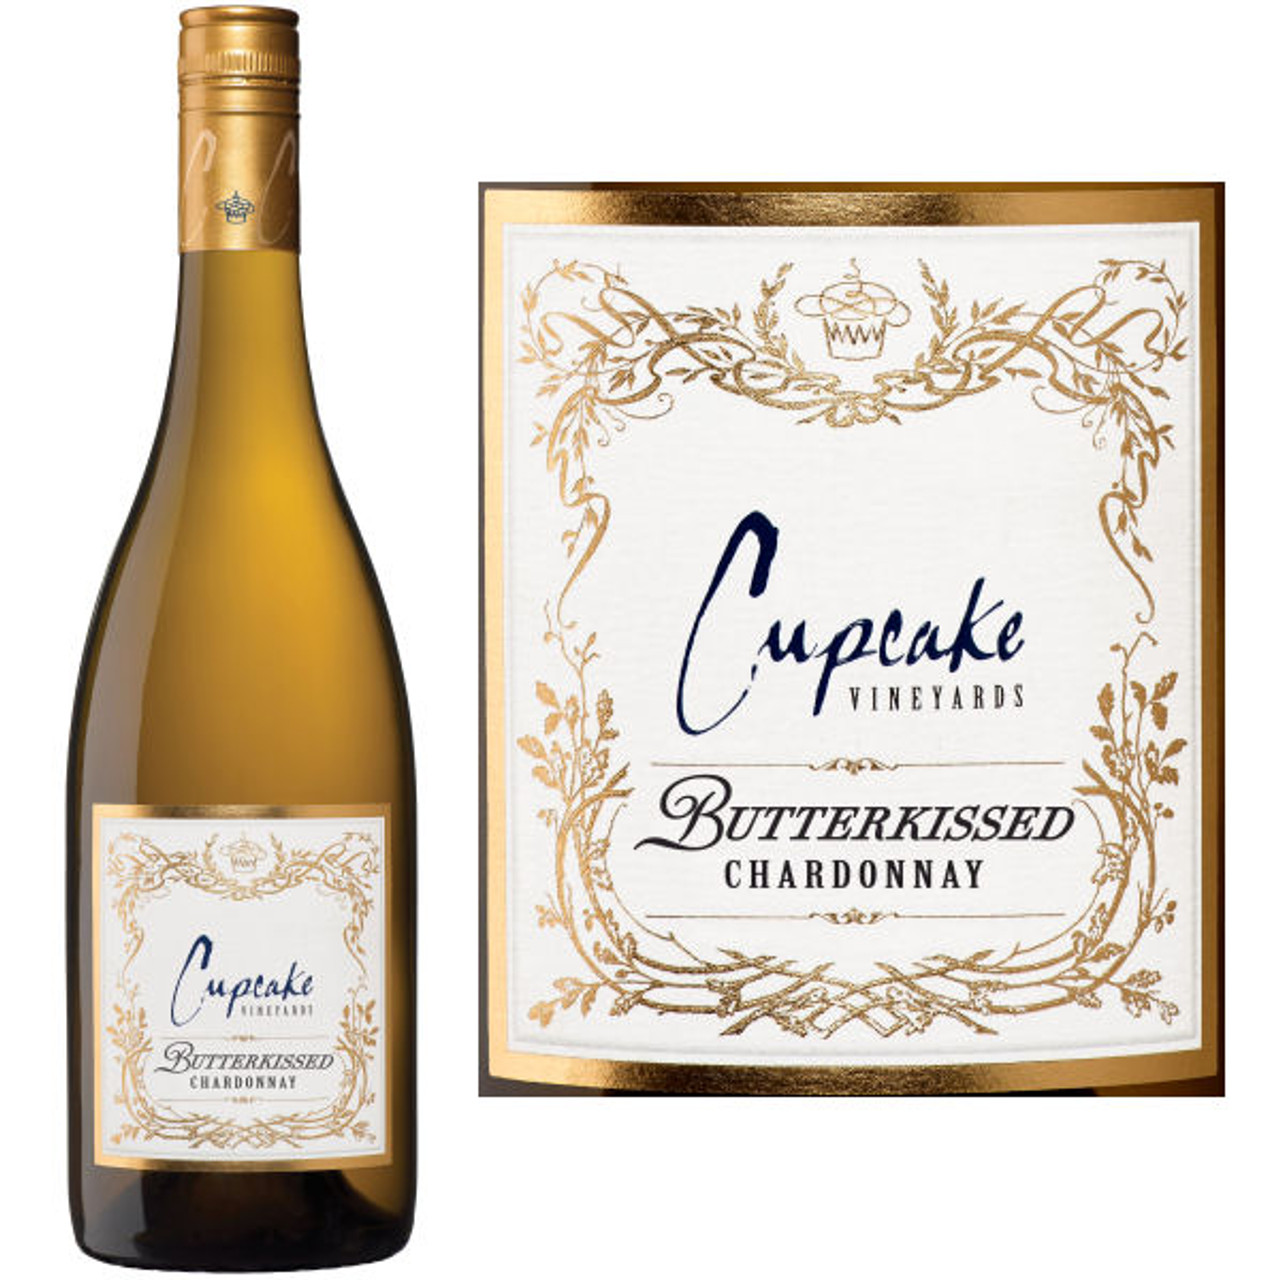 Cupcake Butterkissed California Chardonnay